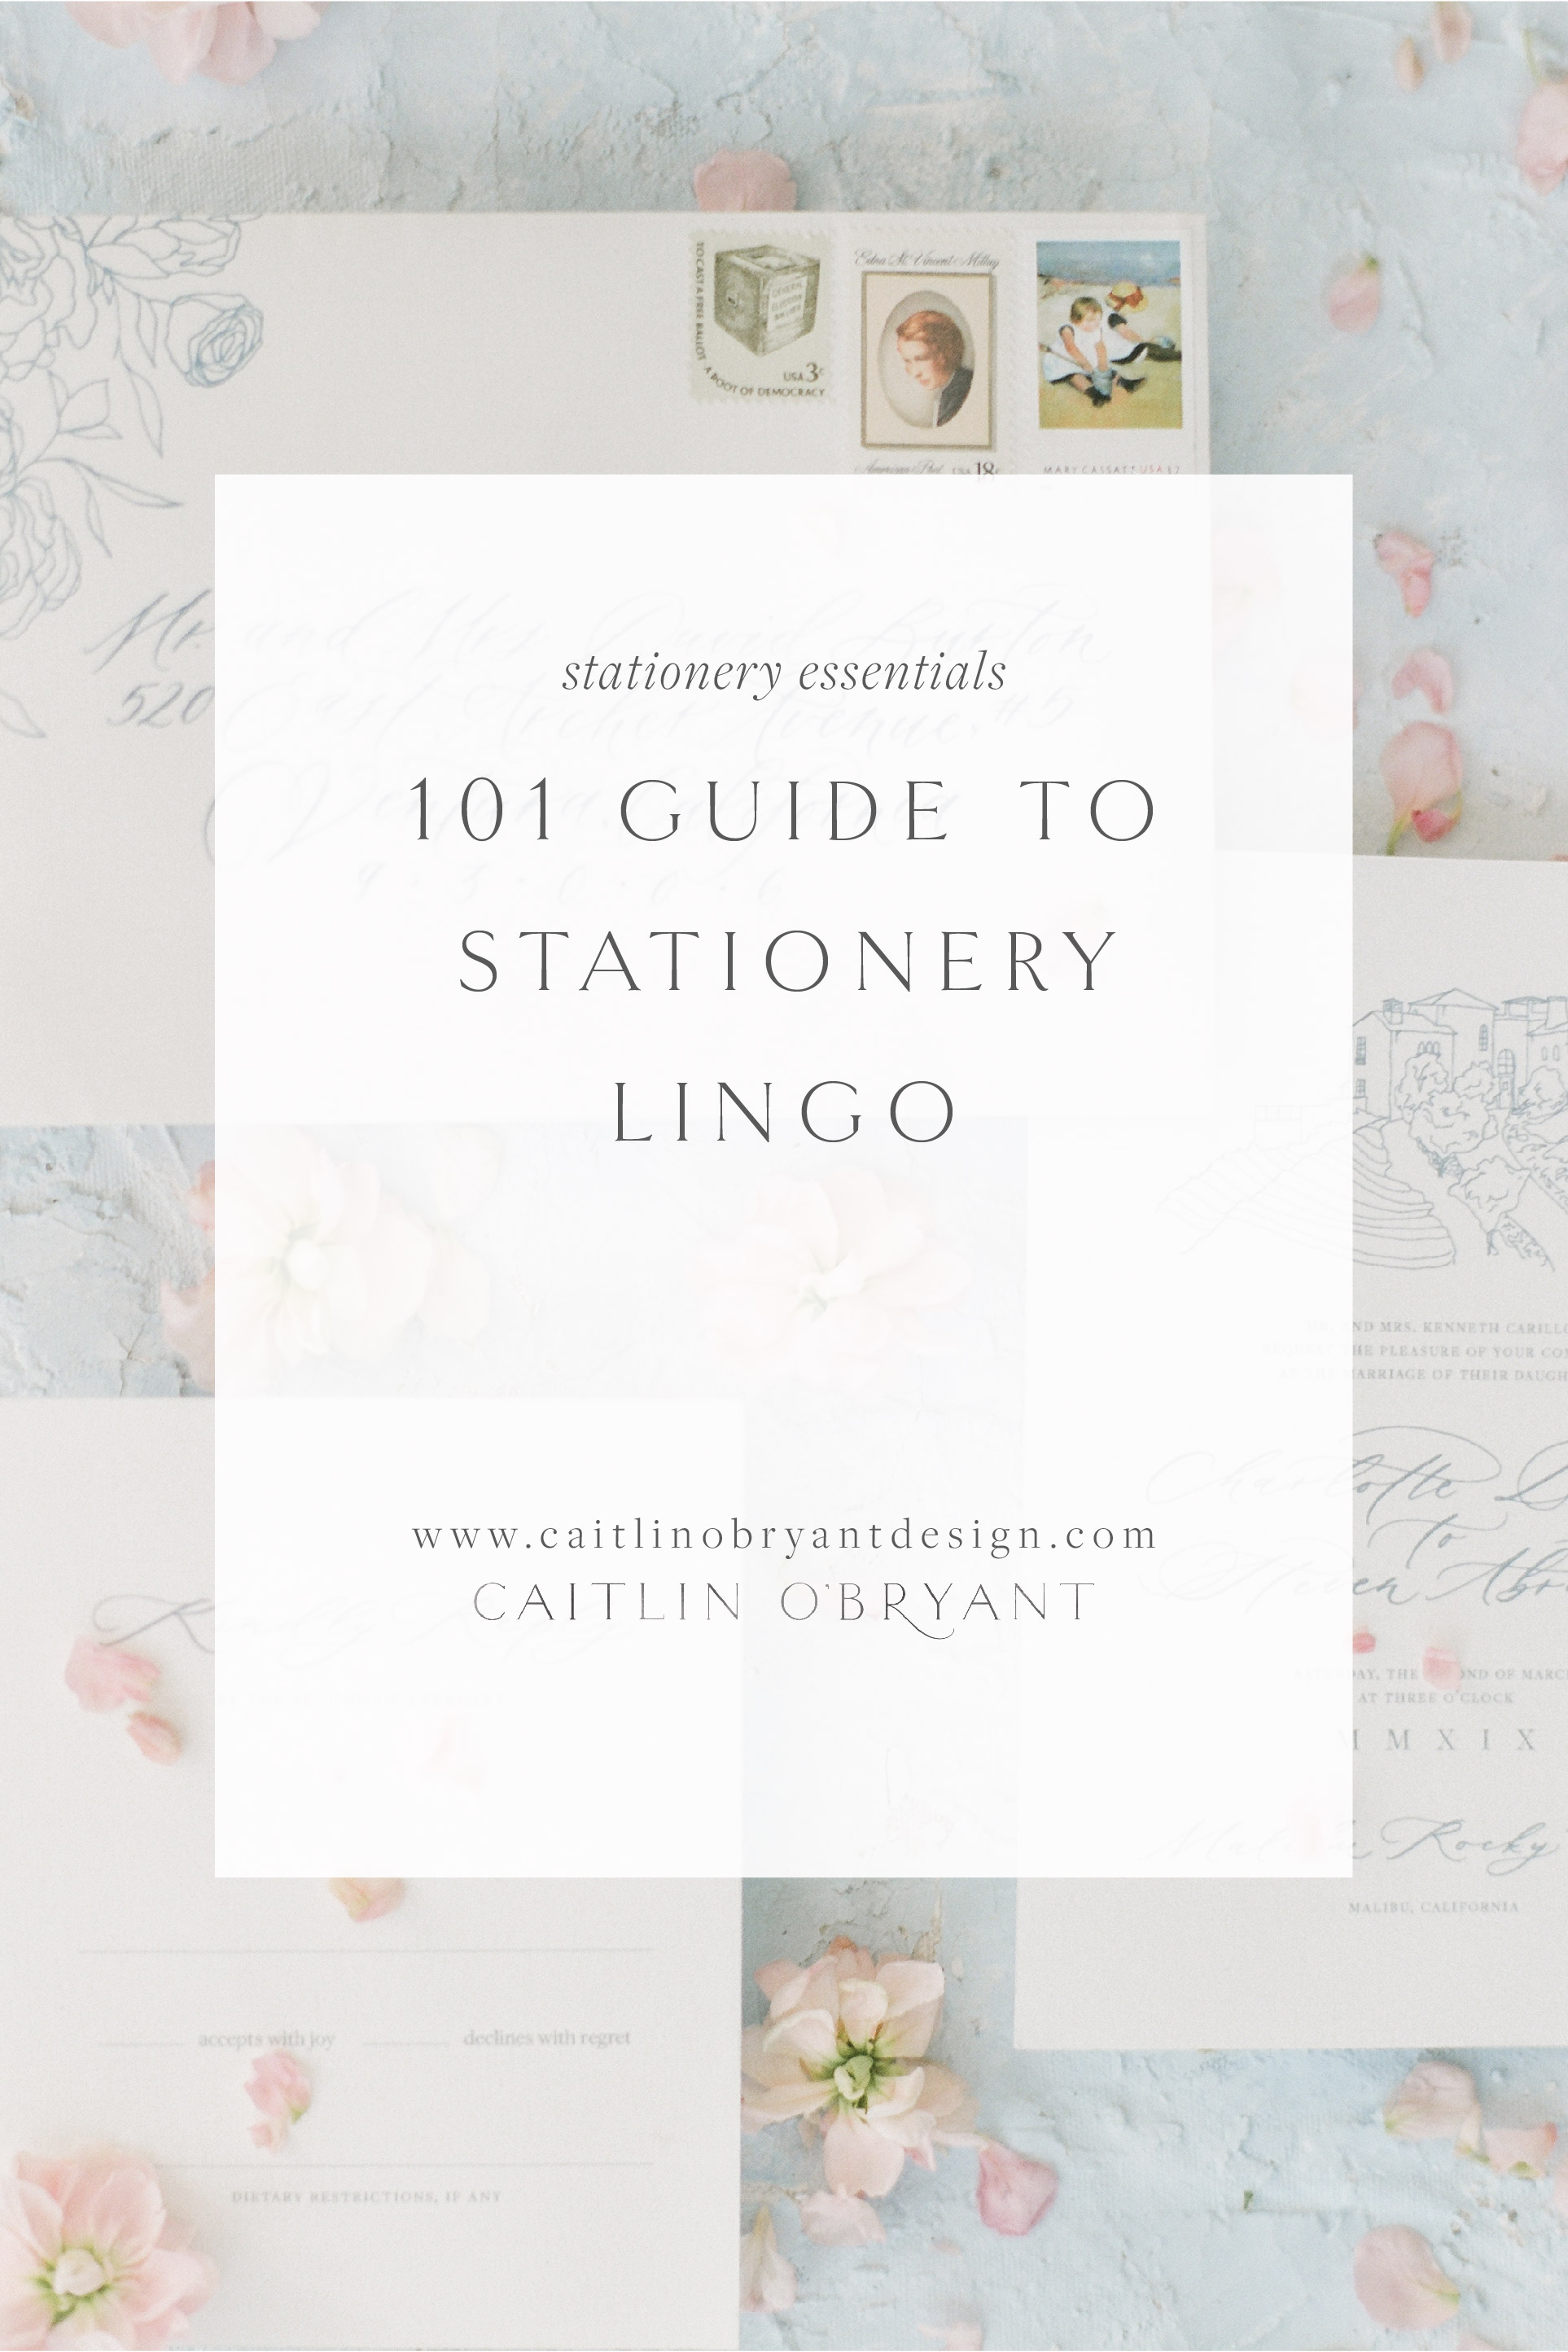 A 101 Guide to Wedding Stationery Lingo. All the basic terms you should know when ordering wedding invitations.